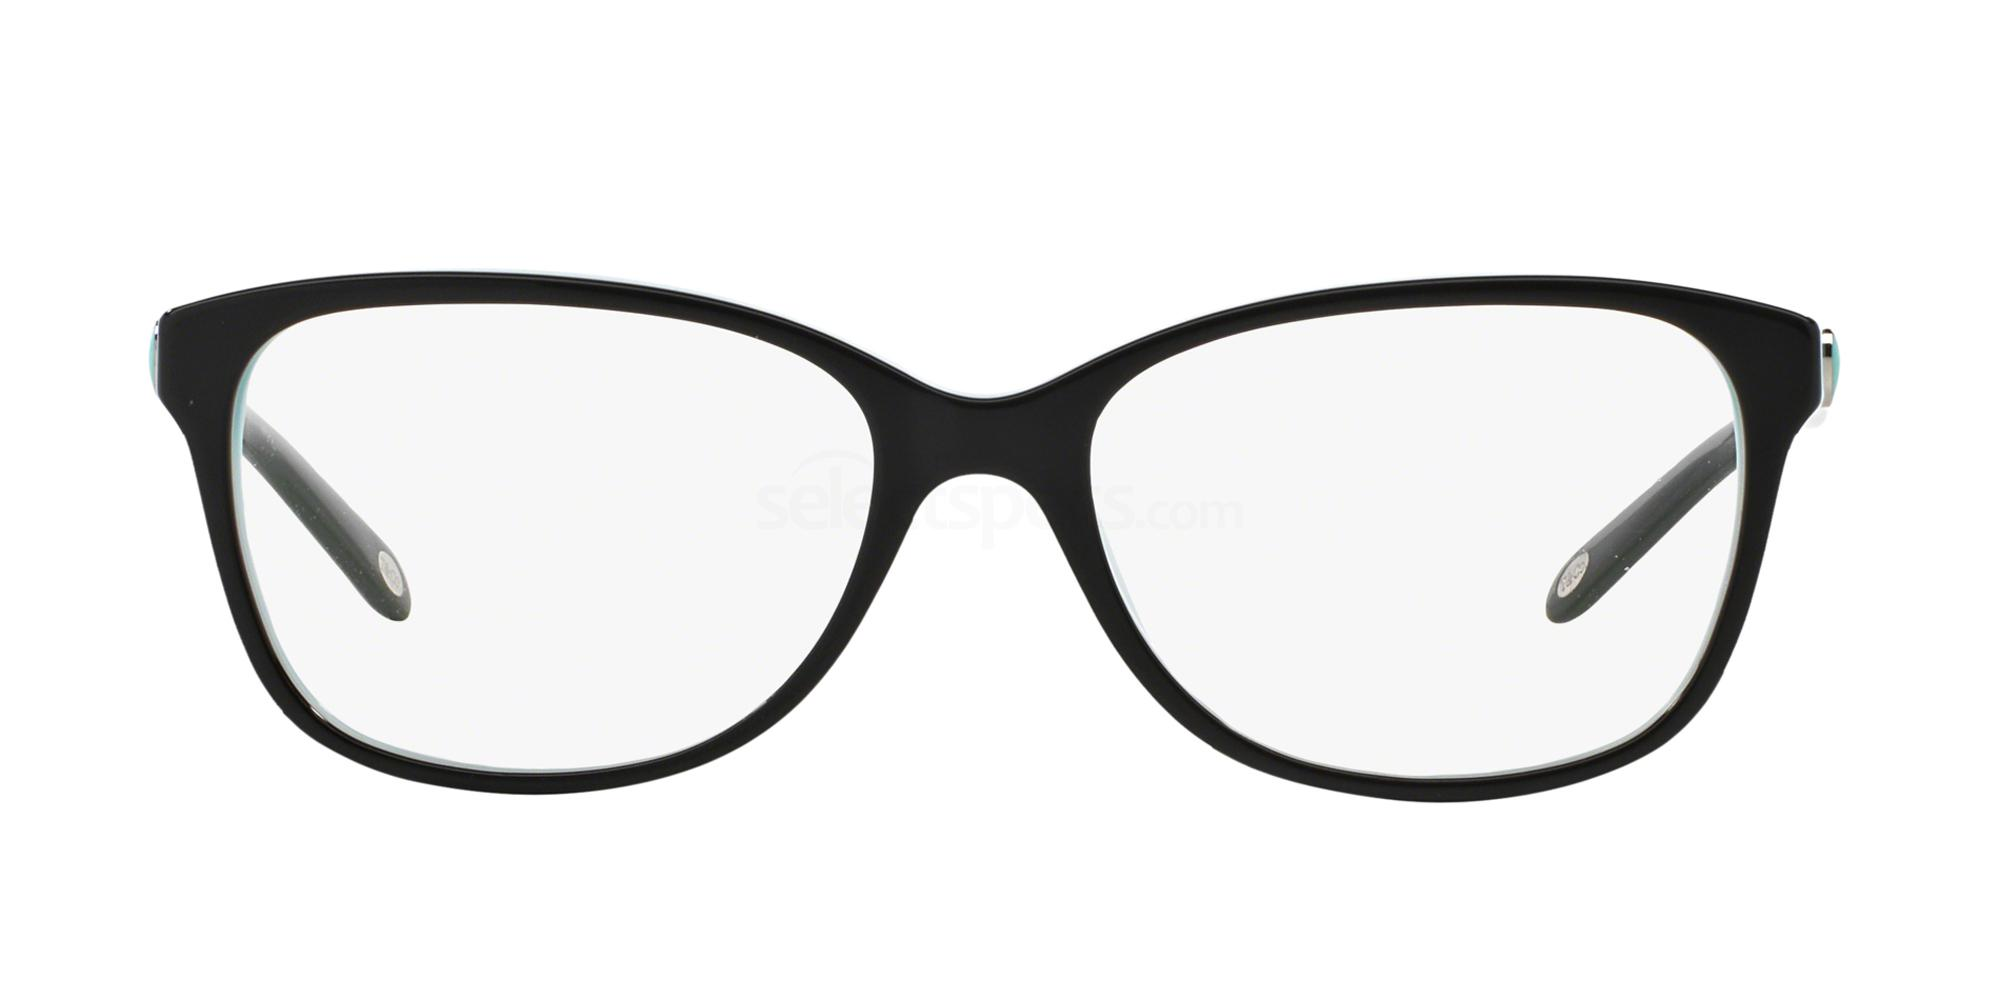 Tiffany & Co. TF2097 glasses | Free lenses | SelectSpecs